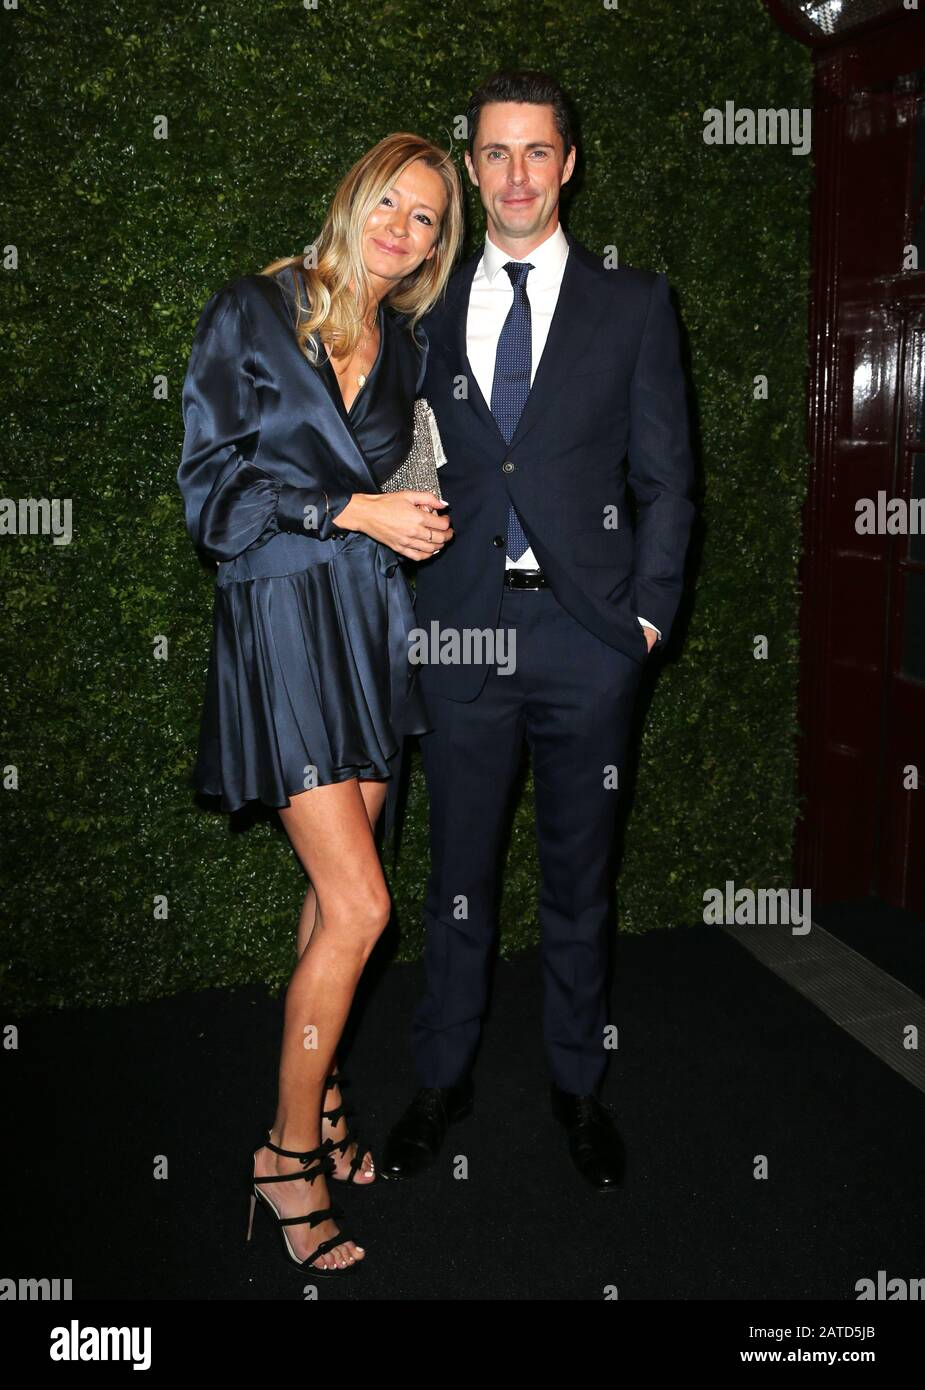 Sophie Dymoke And Matthew Goode Arriving At The Charles Finch And Chanel Pre Bafta Party At 5 Hertford Street In Mayfair London Pa Photo Picture Date Saturday February 1 2020 See Pa Story Sophie dymoke is a fashion designer who works for fashion brands including vince but currently working as a sophie dymoke bio. https www alamy com sophie dymoke and matthew goode arriving at the charles finch and chanel pre bafta party at 5 hertford street in mayfair london pa photo picture date saturday february 1 2020 see pa story showbiz bafta photo credit should read isabel infantespa wire image342038547 html